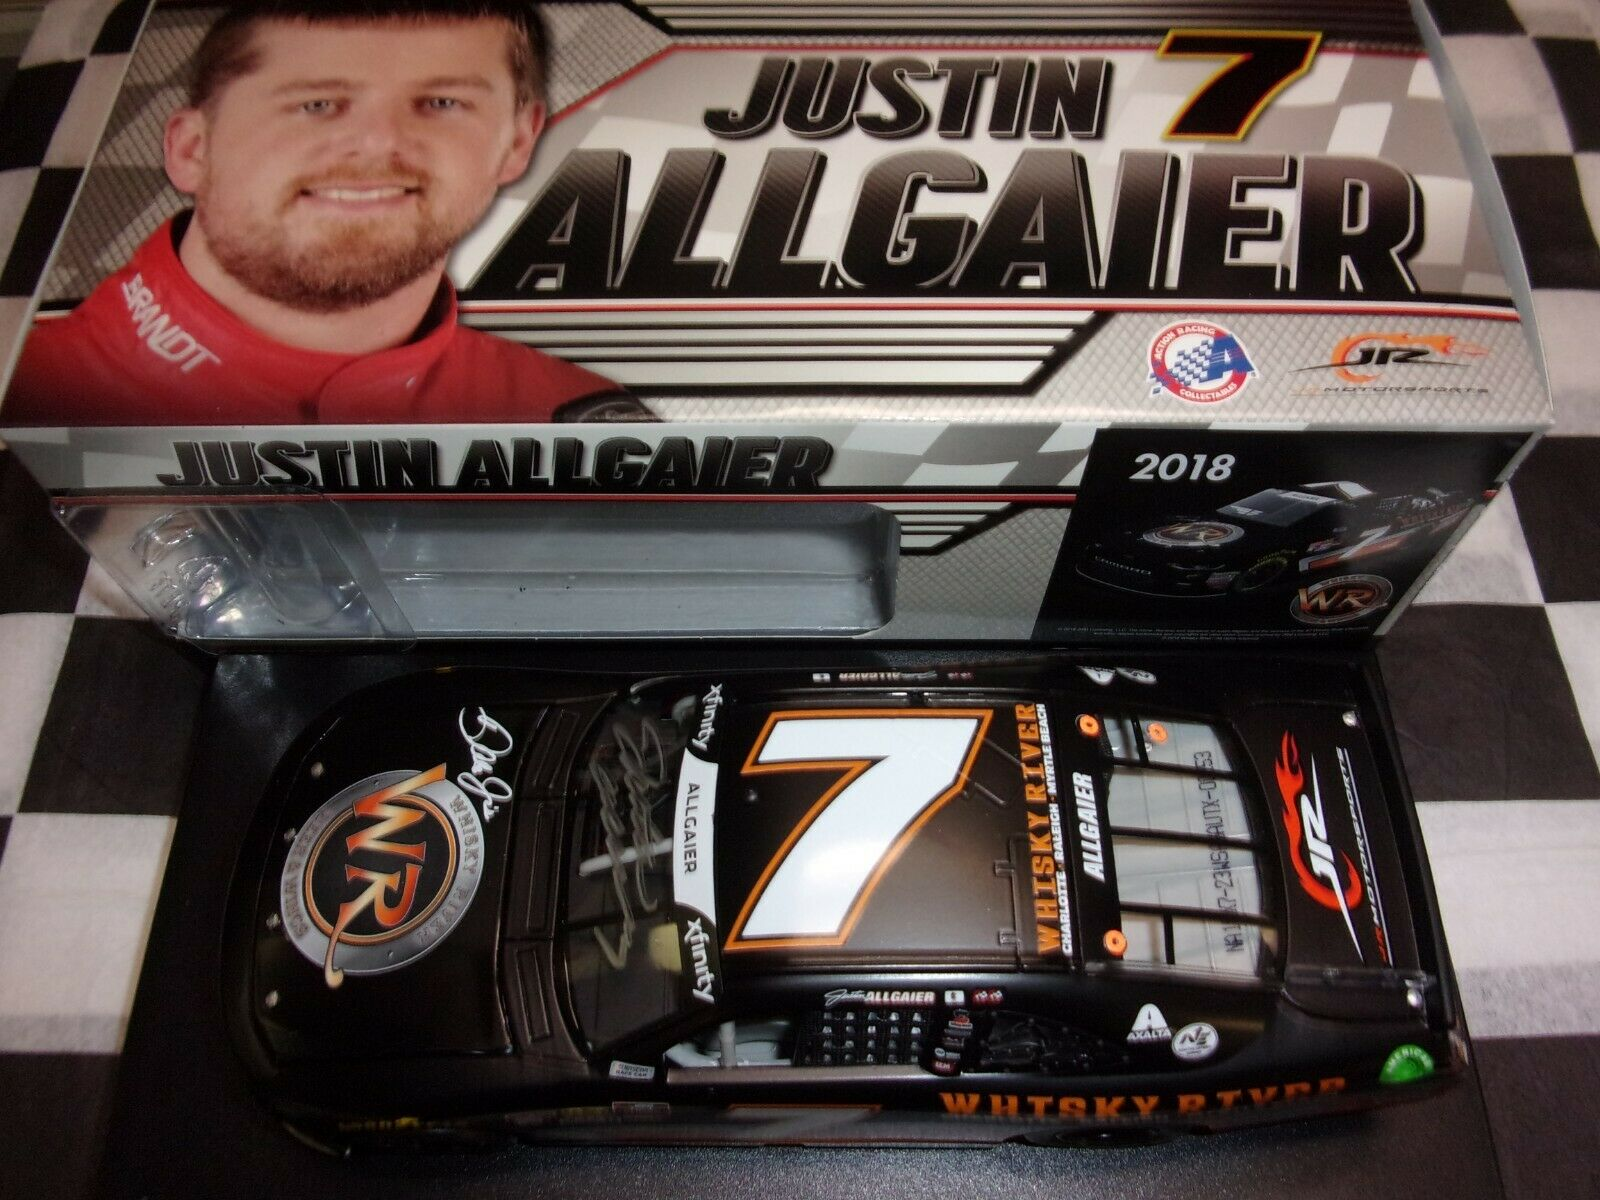 Justin Allgaier  7 Whiskey River 2018 Camaro 1 24 scale car NASCAR AUTOGRAPHED